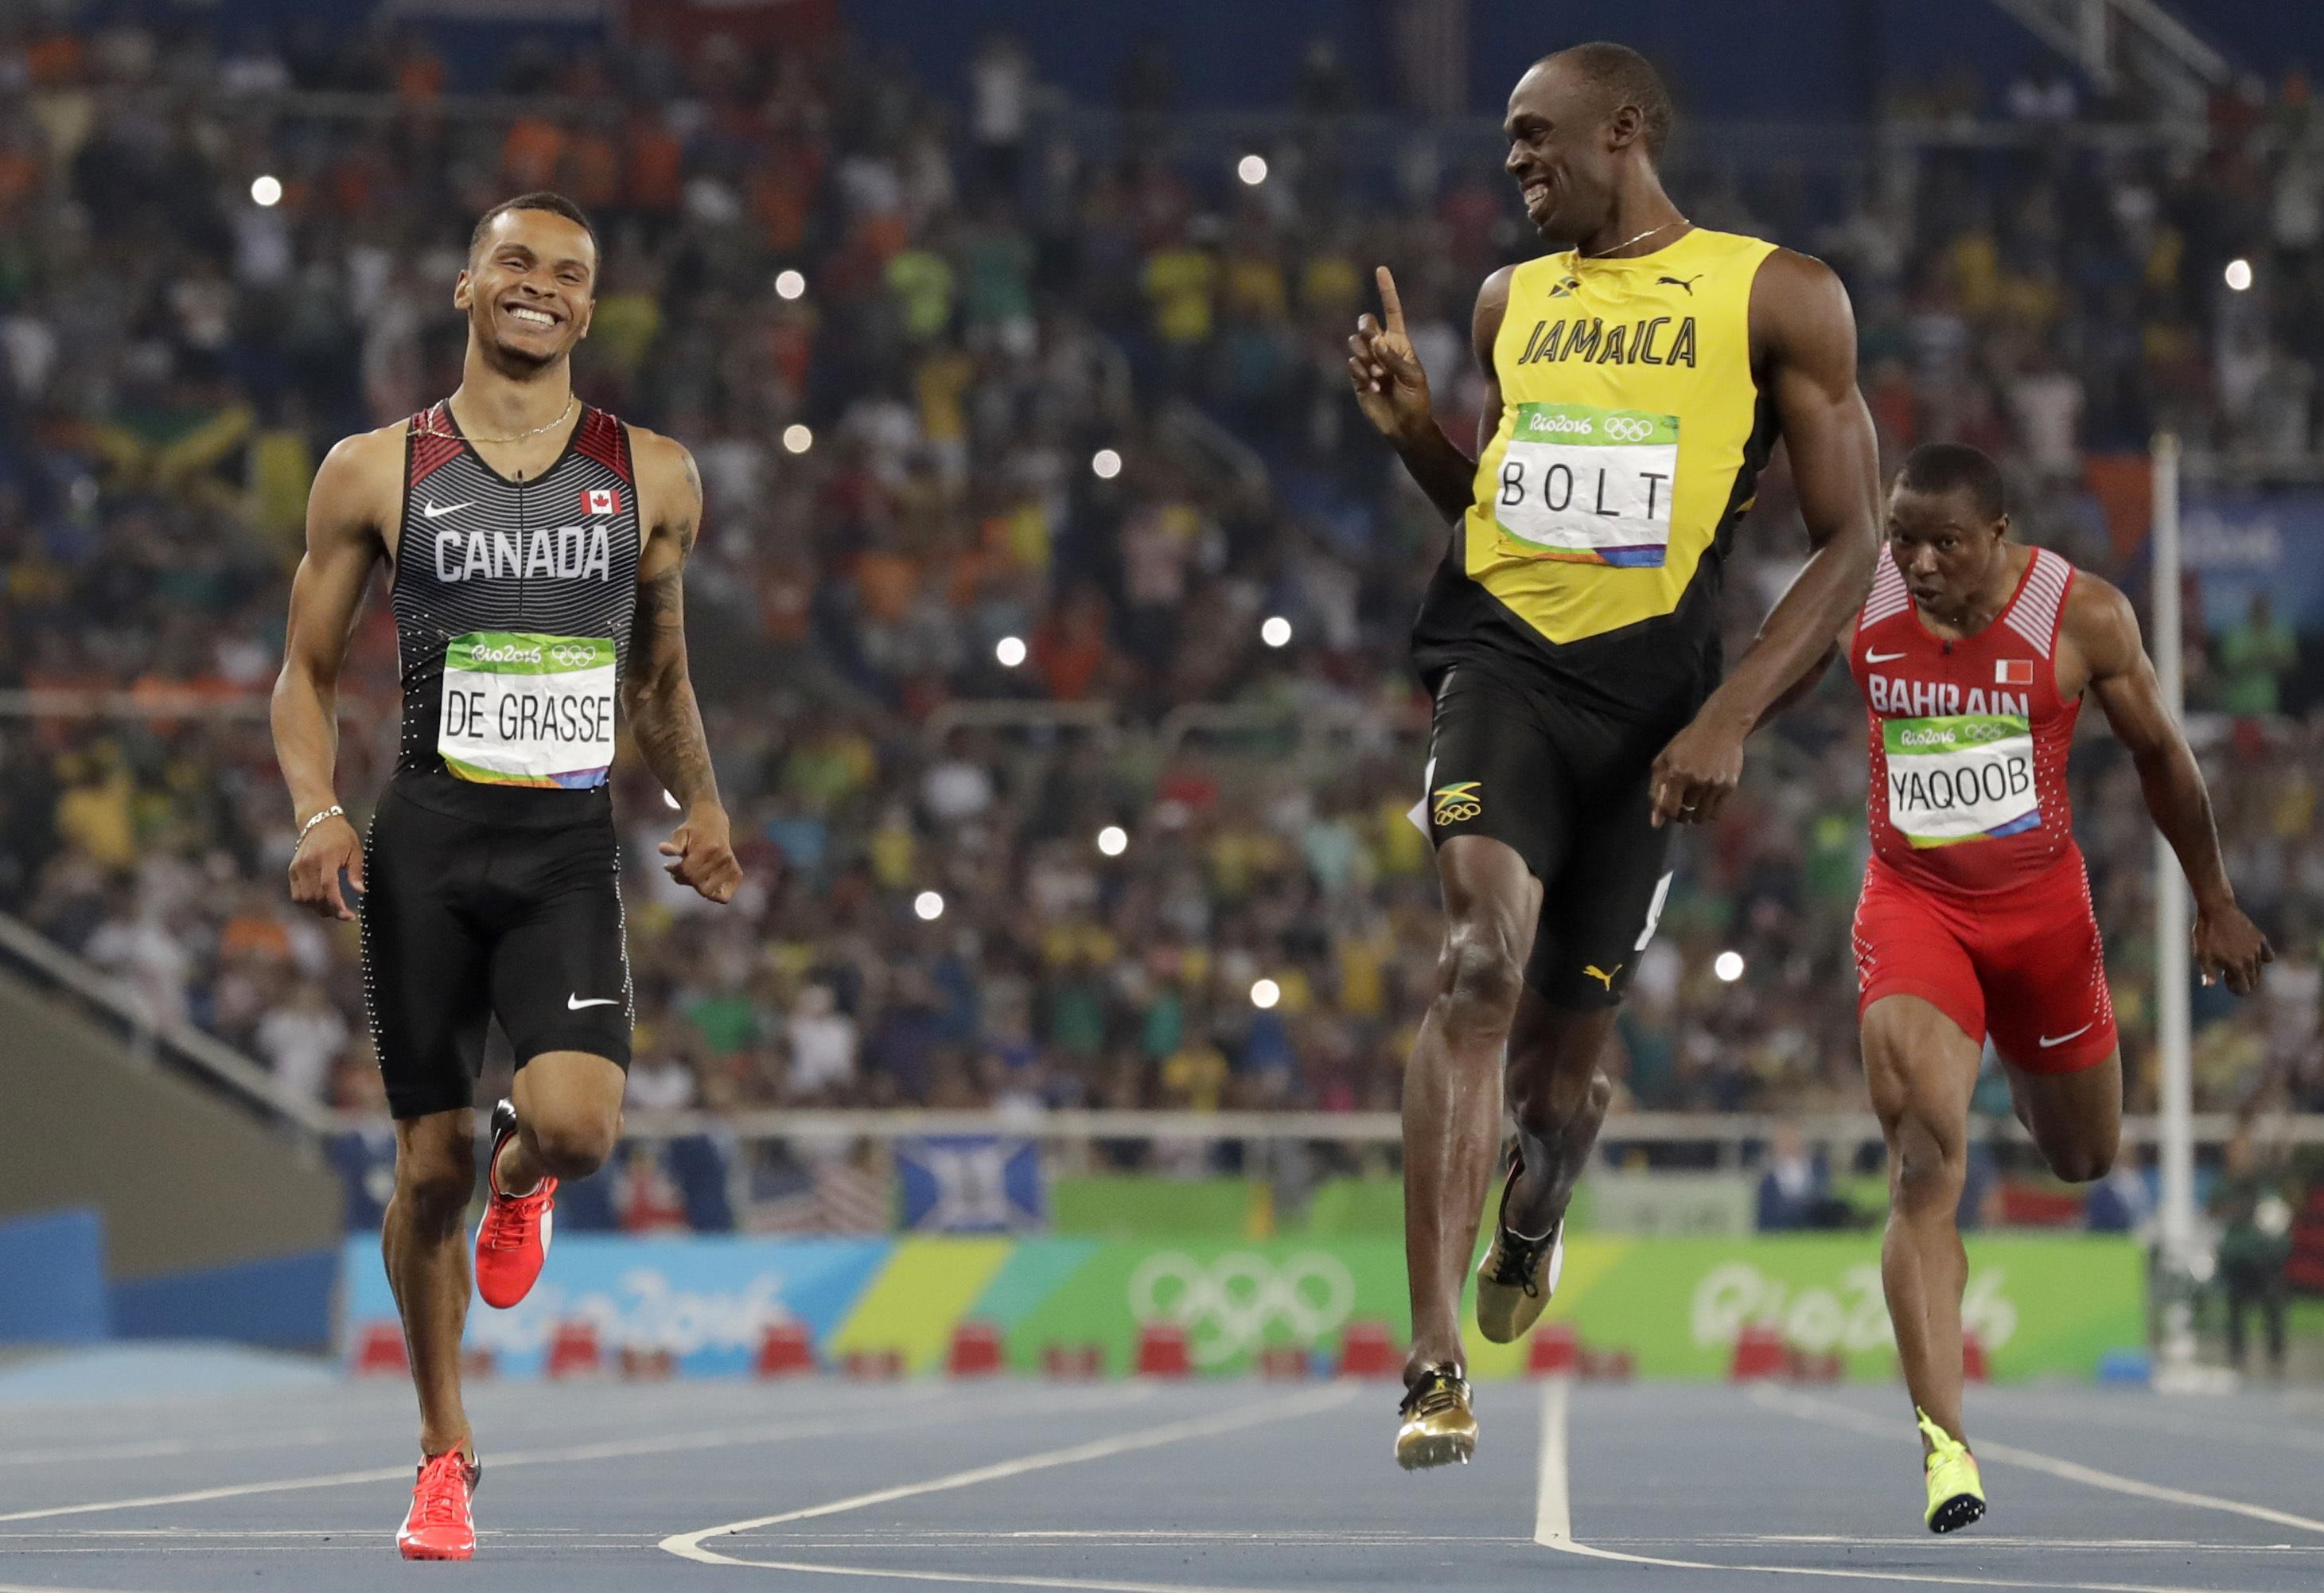 Andre De Grasse will be aiming to be the world's new Usain Bolt